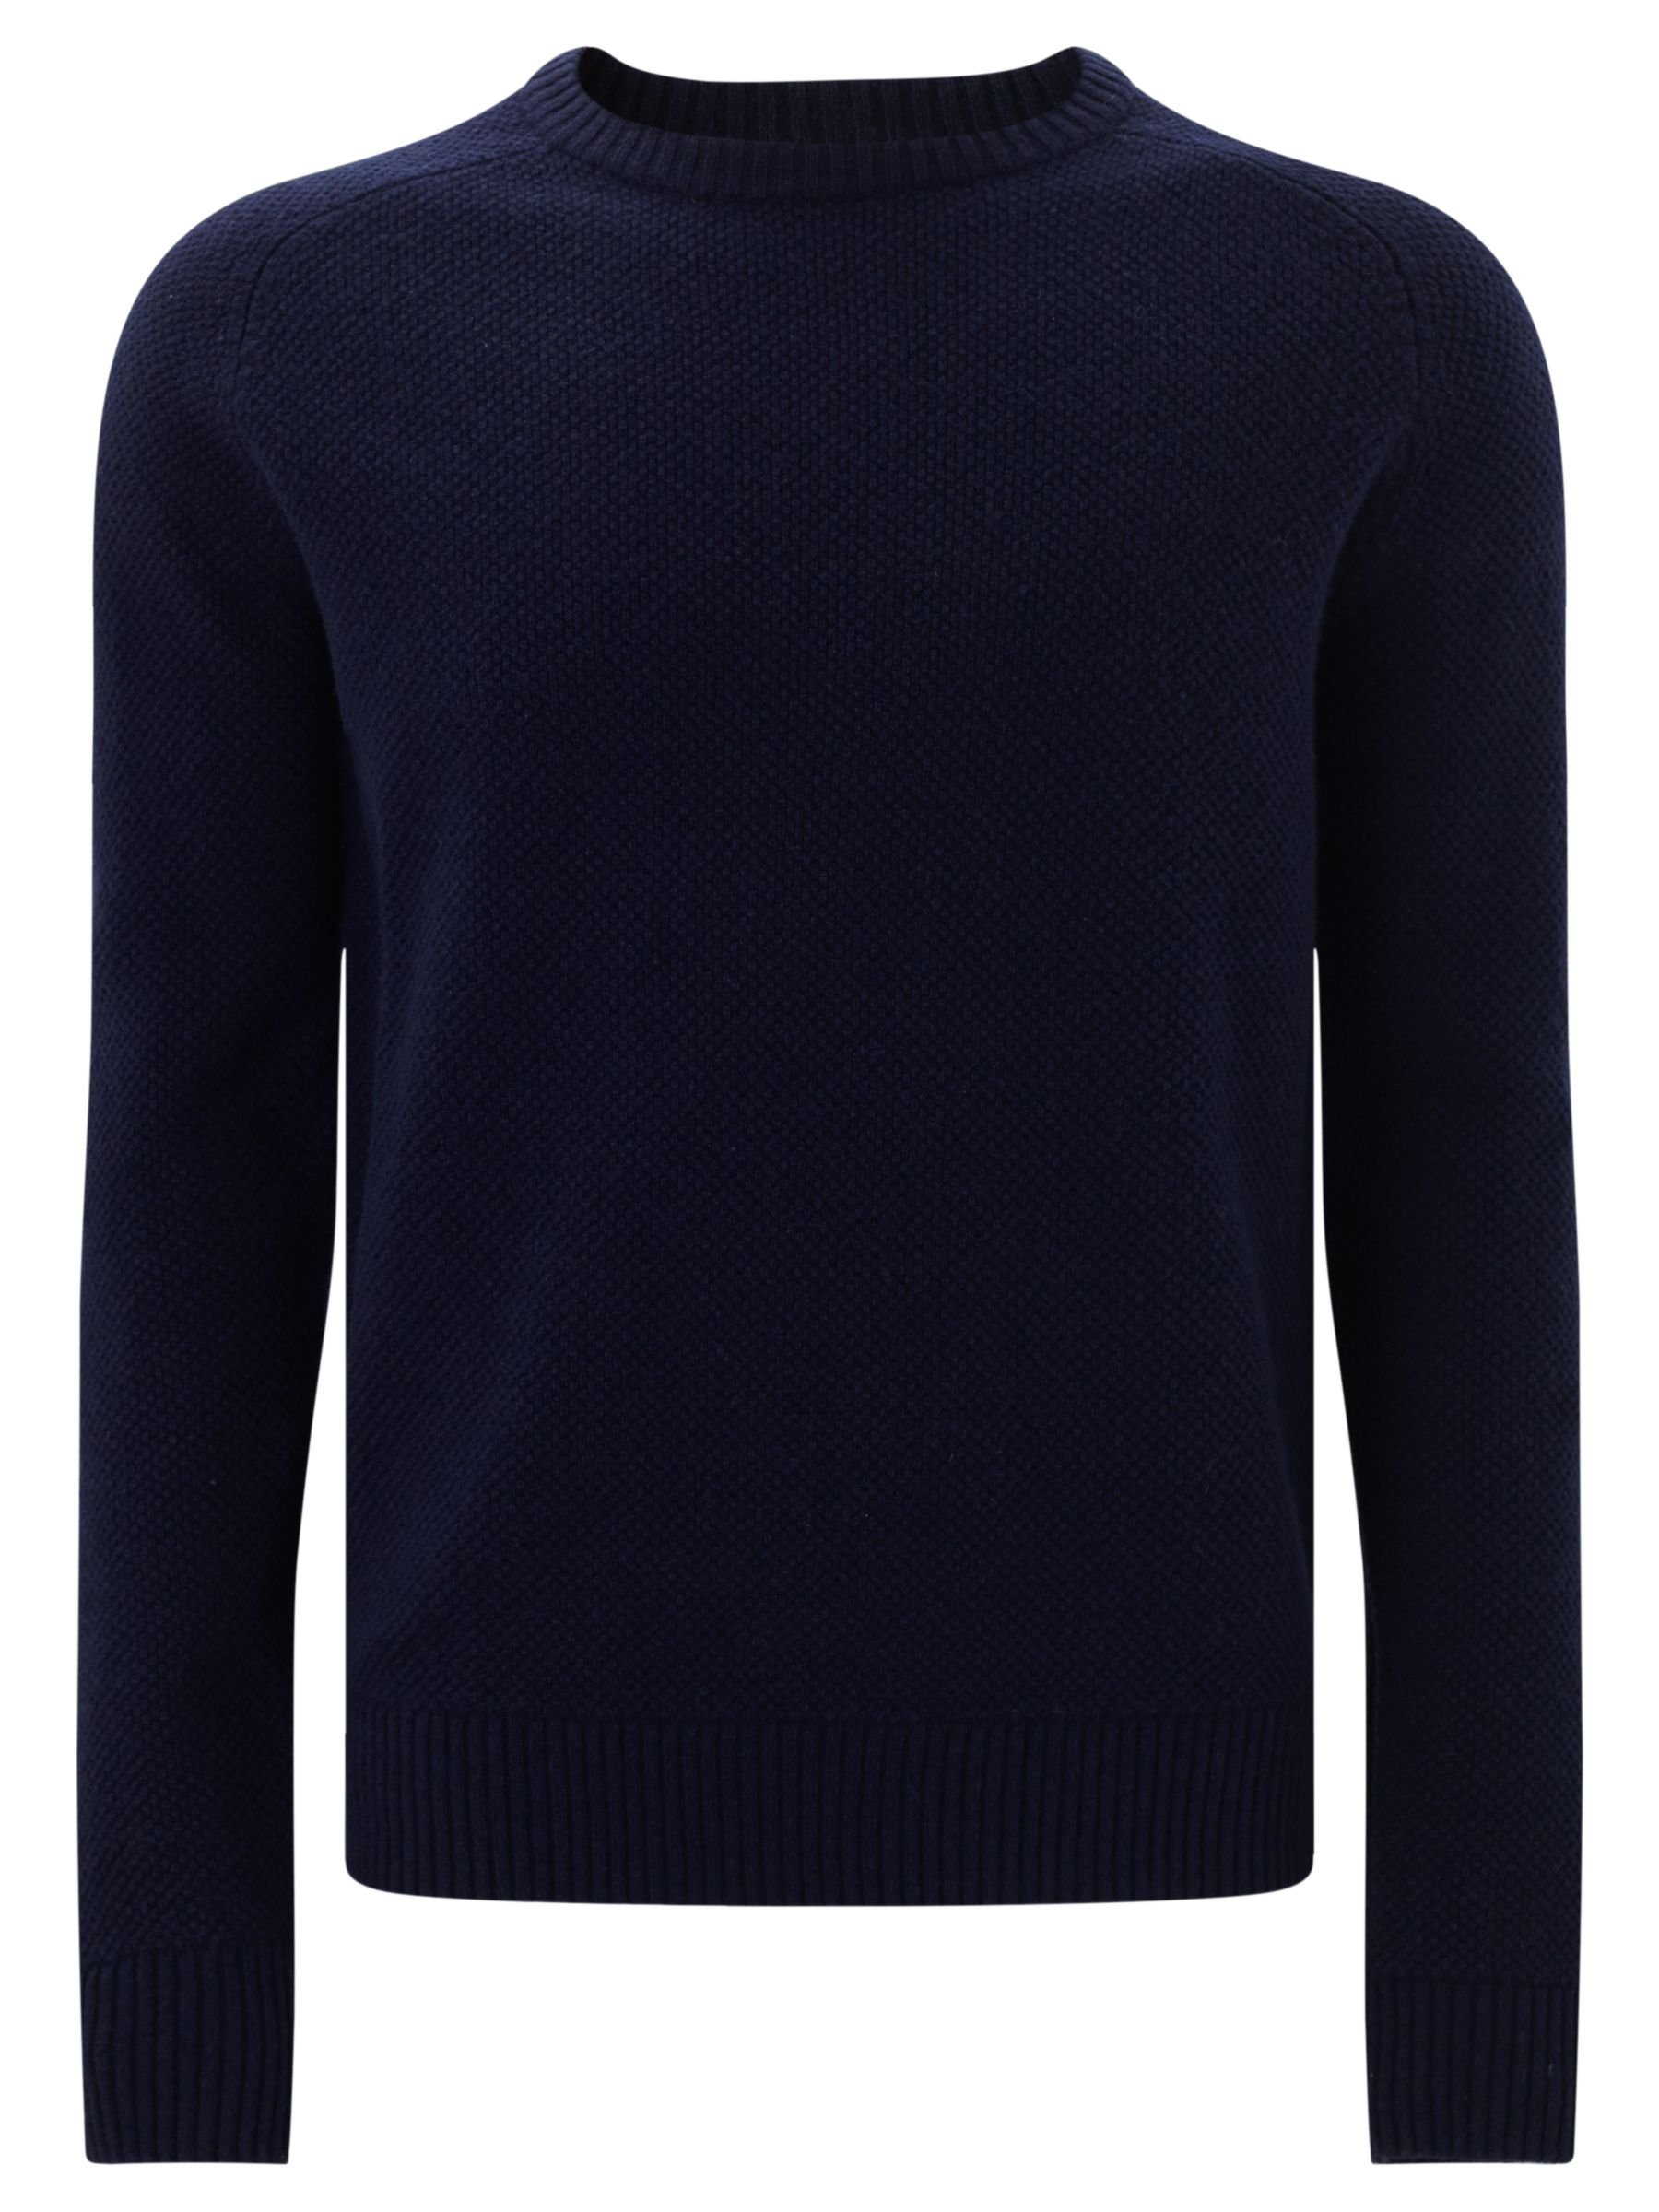 JOHN LEWIS & Co. JOHN LEWIS & Co. Tuck Stitch Lambswool Jumper, Navy